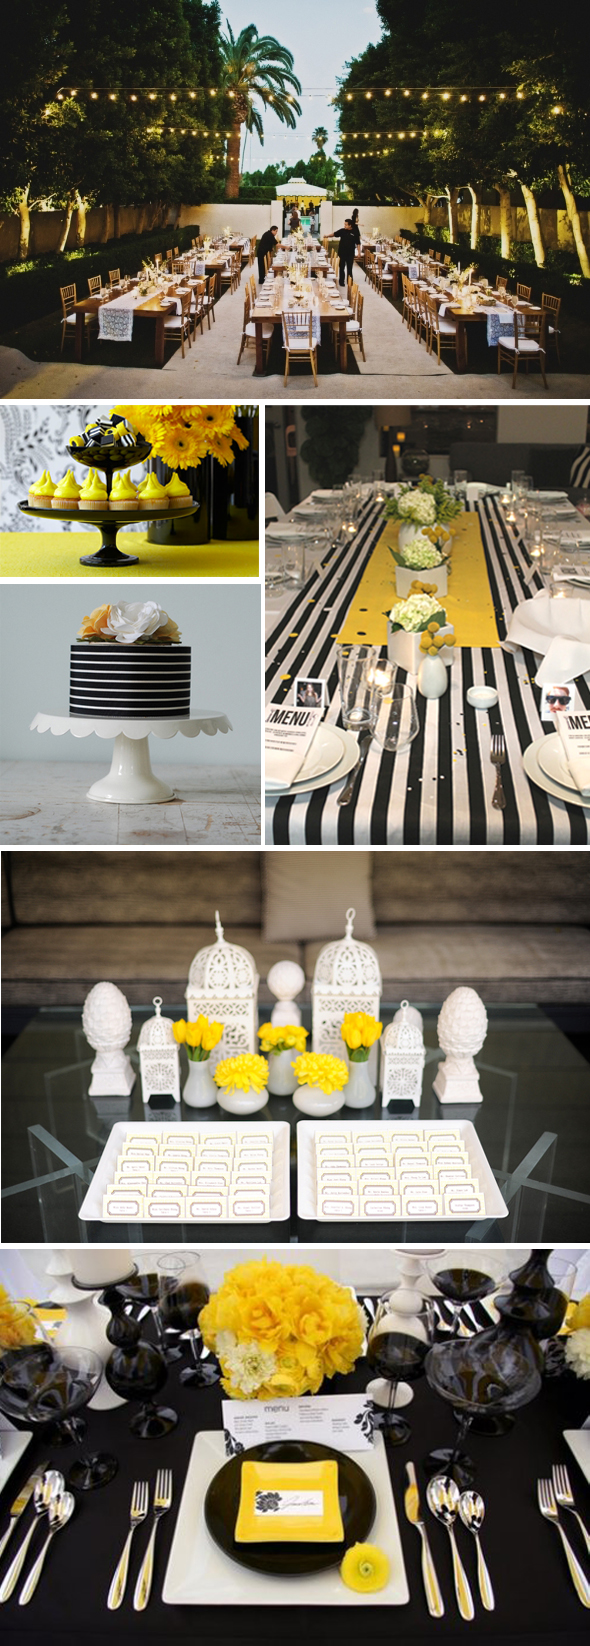 viceroy black white yellow weddings Inspired by the Viceroy Hotel